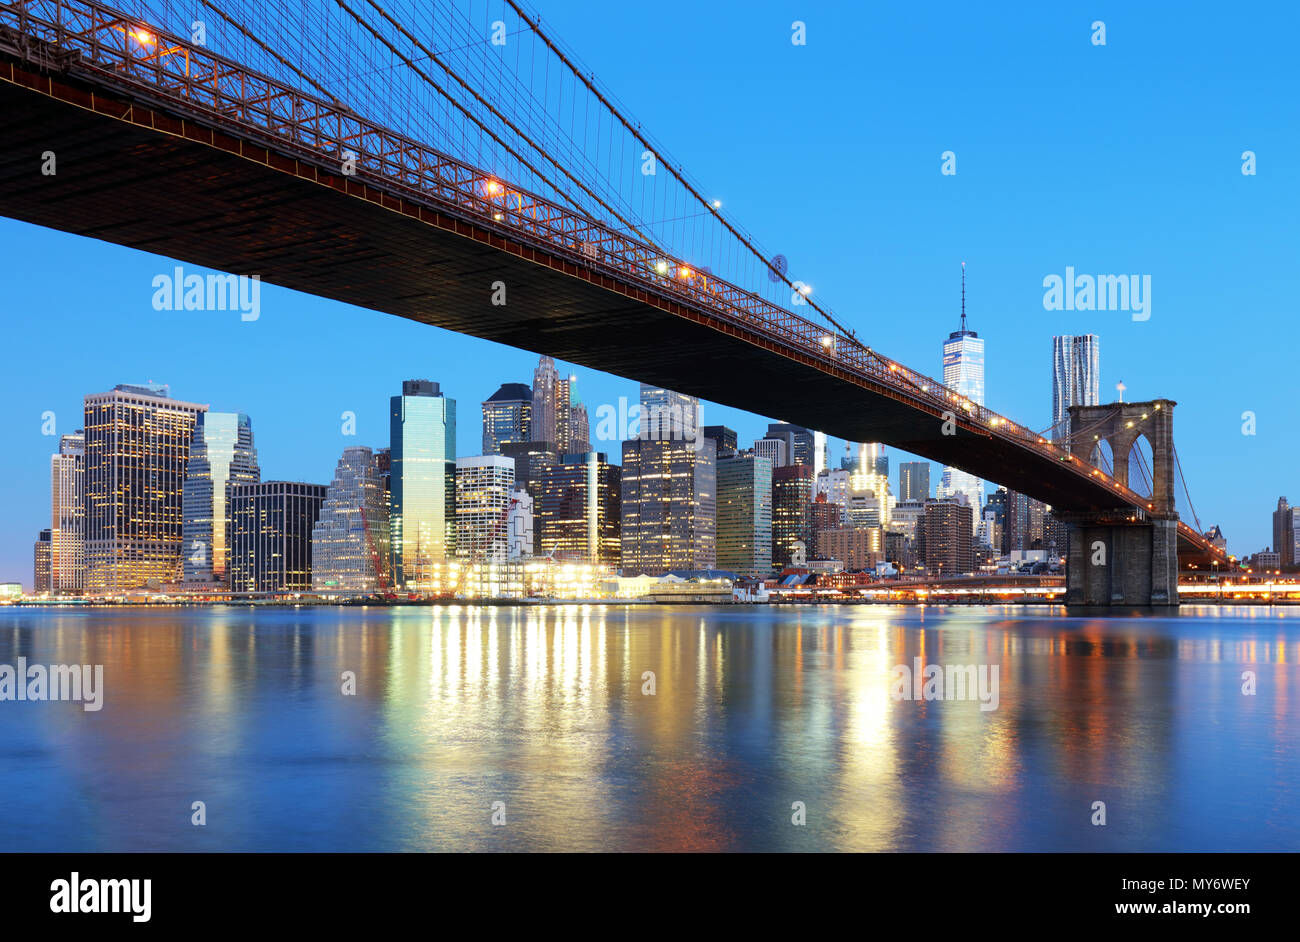 New York City skyline, USA - Stock Image